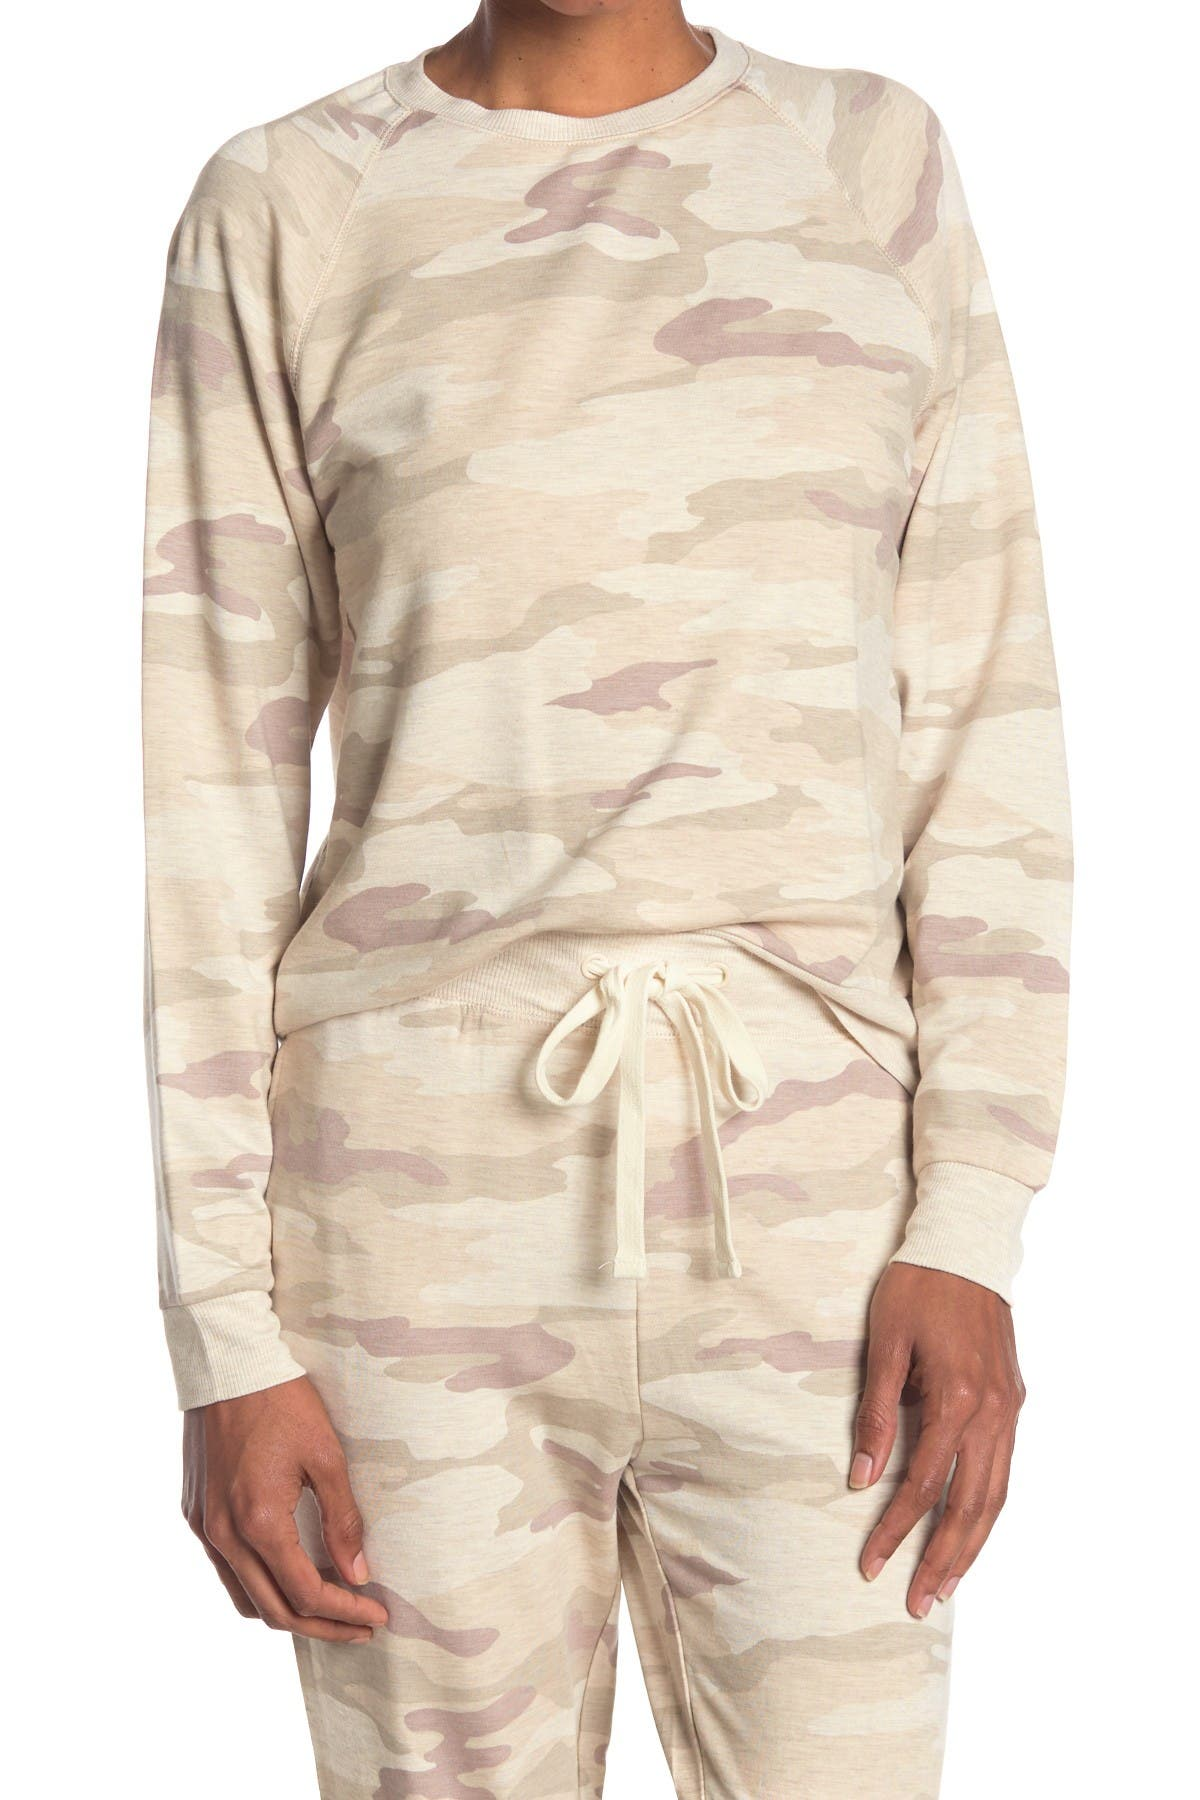 Image of THREAD AND SUPPLY Jacey Camo Print Raglan Pullover